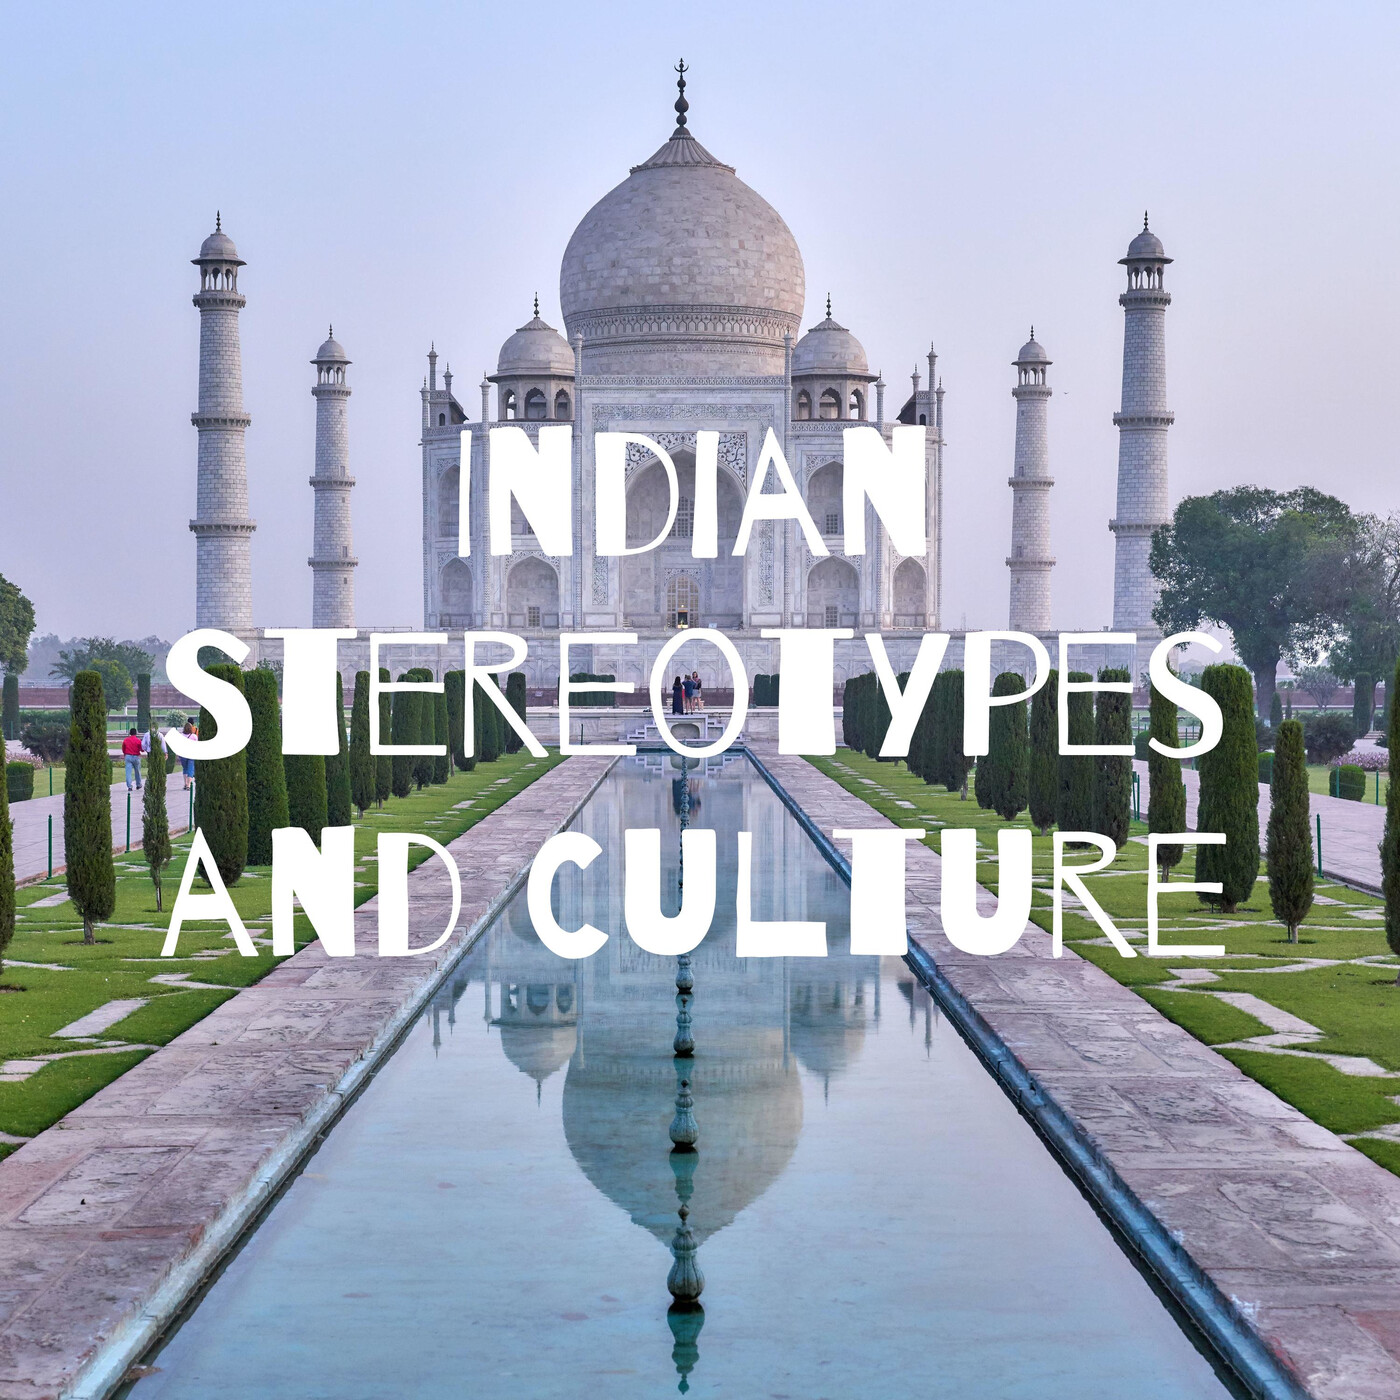 Indian Stereotypes and Culture